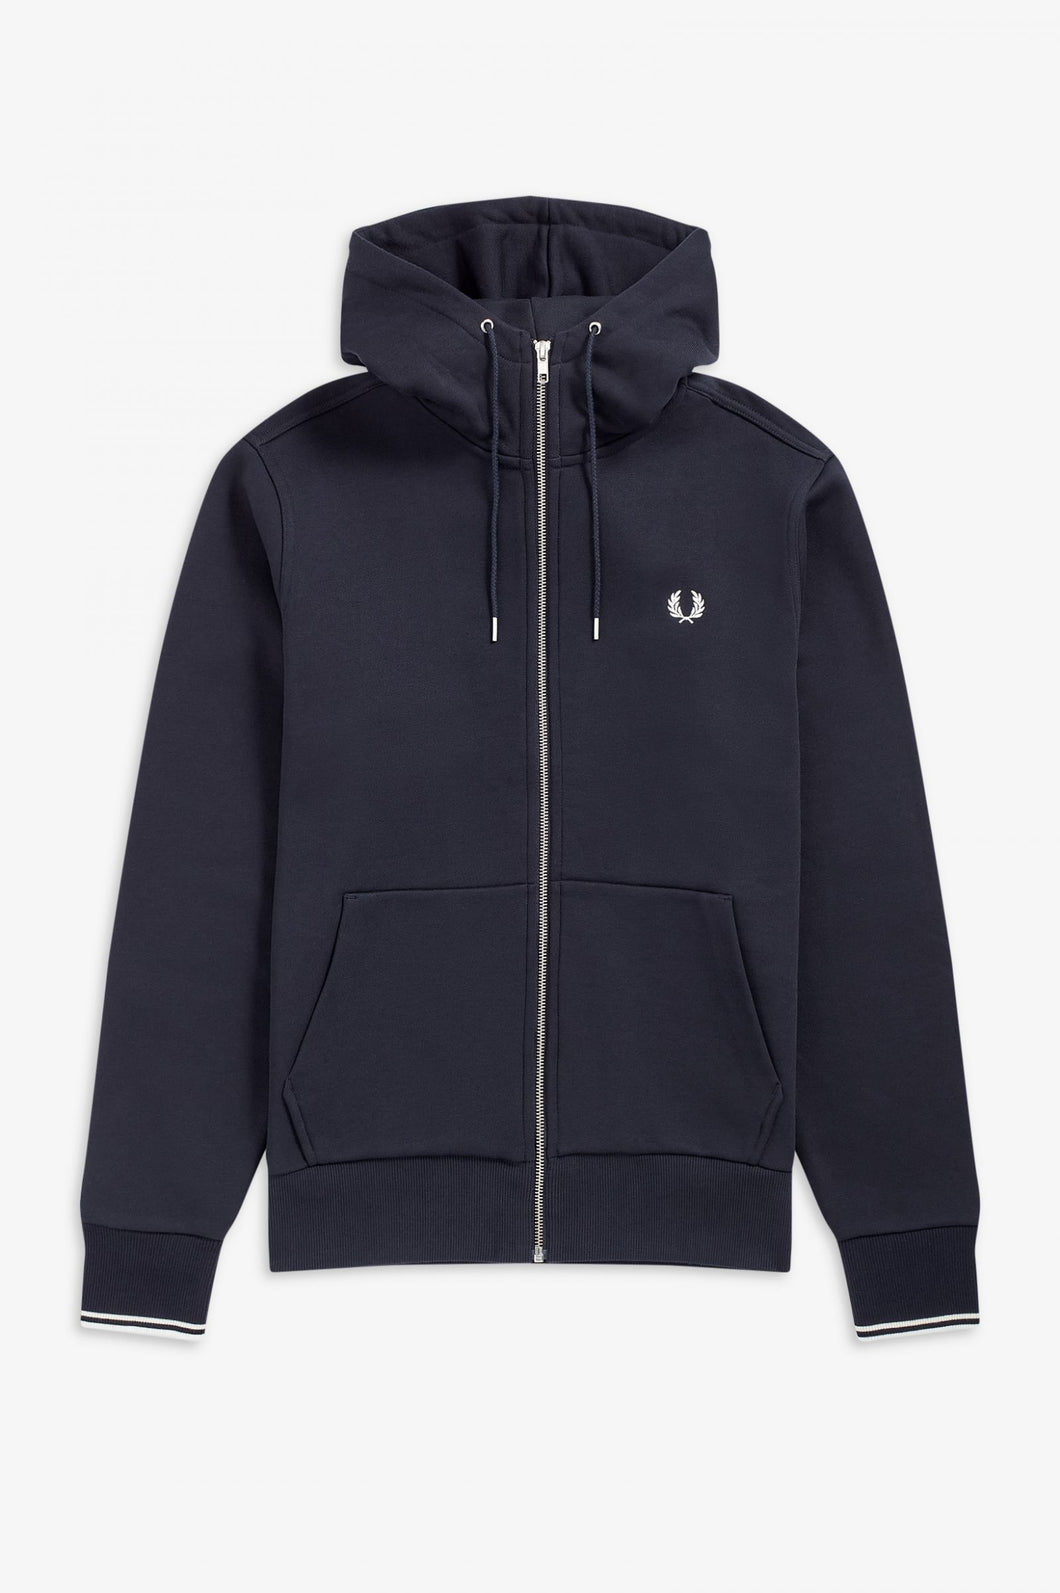 Fred Perry Navy Hooded Zip Through Sweatshirt - J7536 - 795